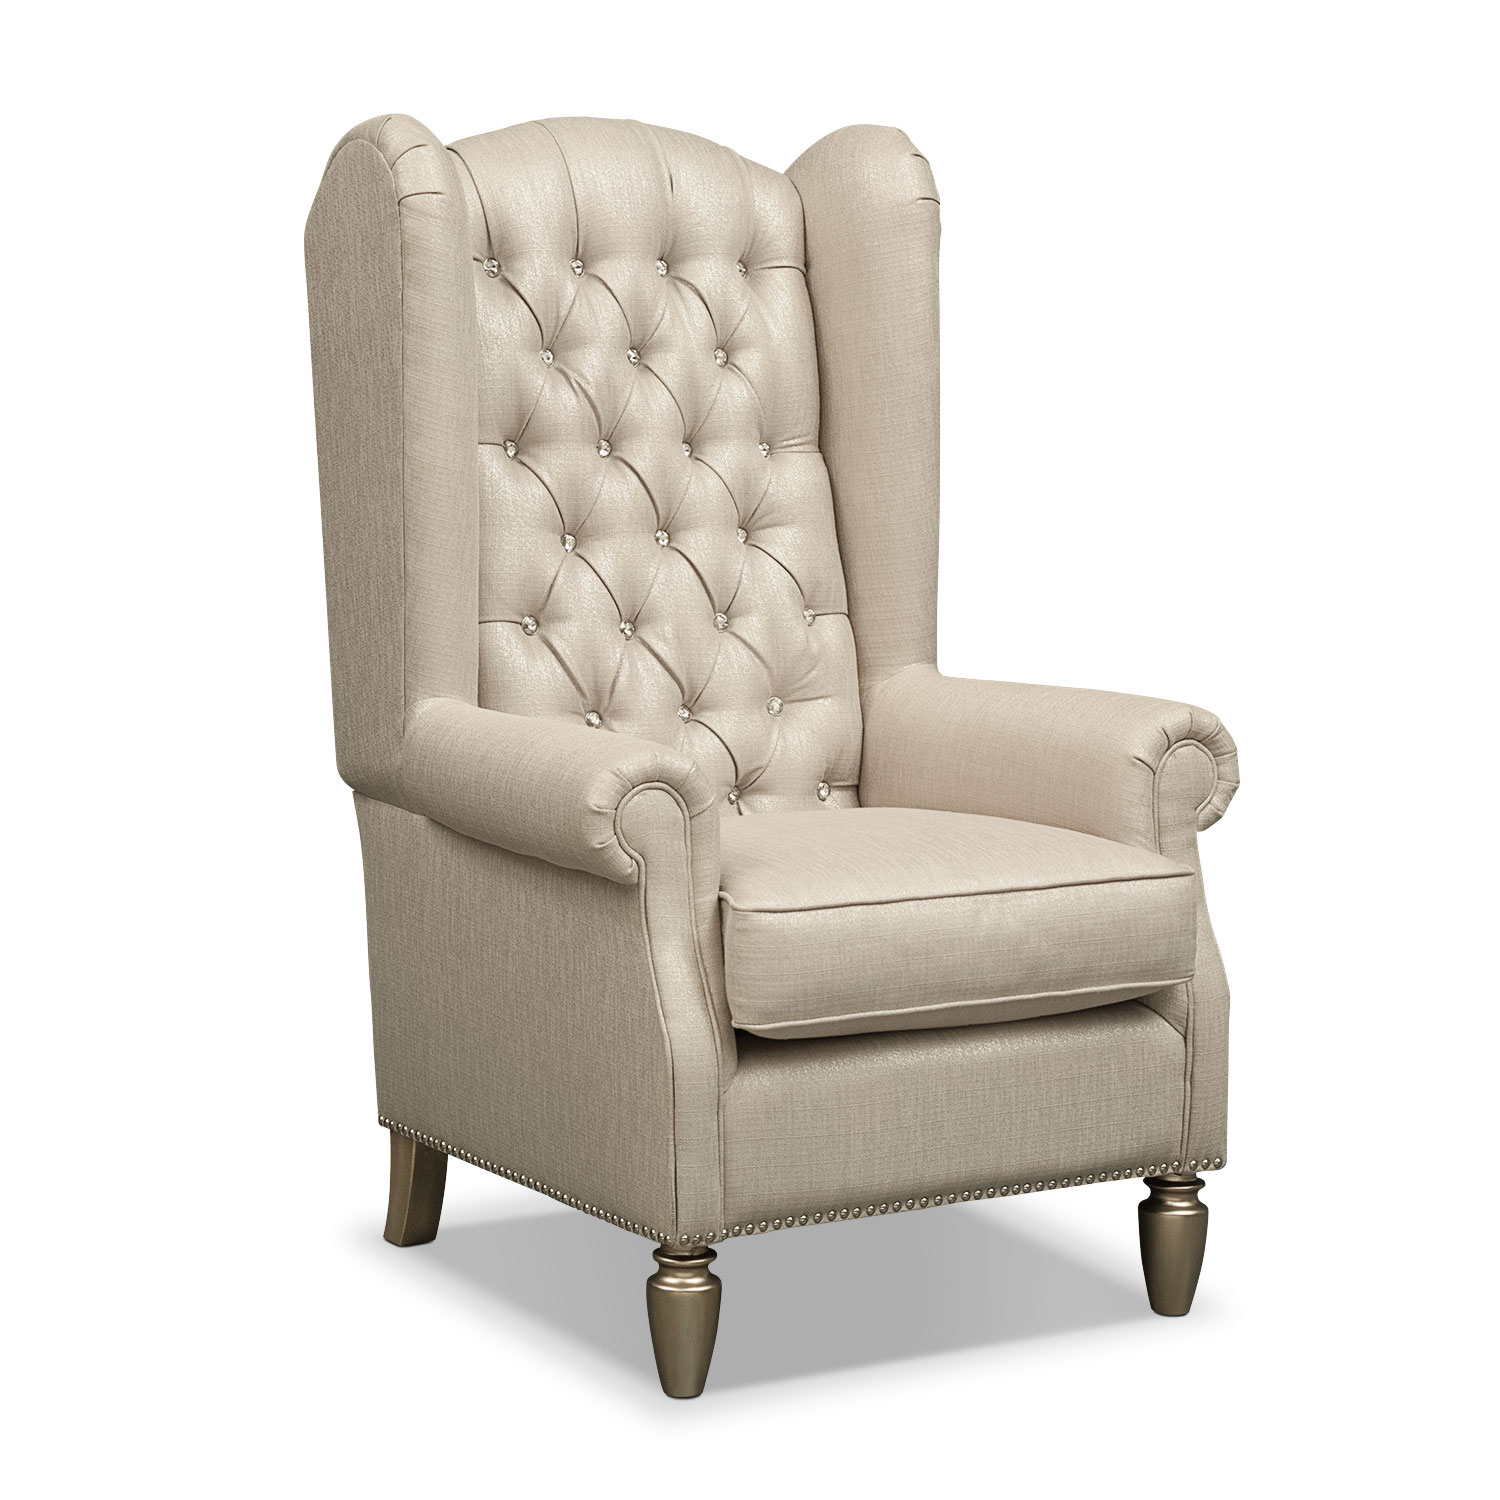 Target Bedroom Chairs Decor Upholstered Accent Chairs Target Arm Chair Accent